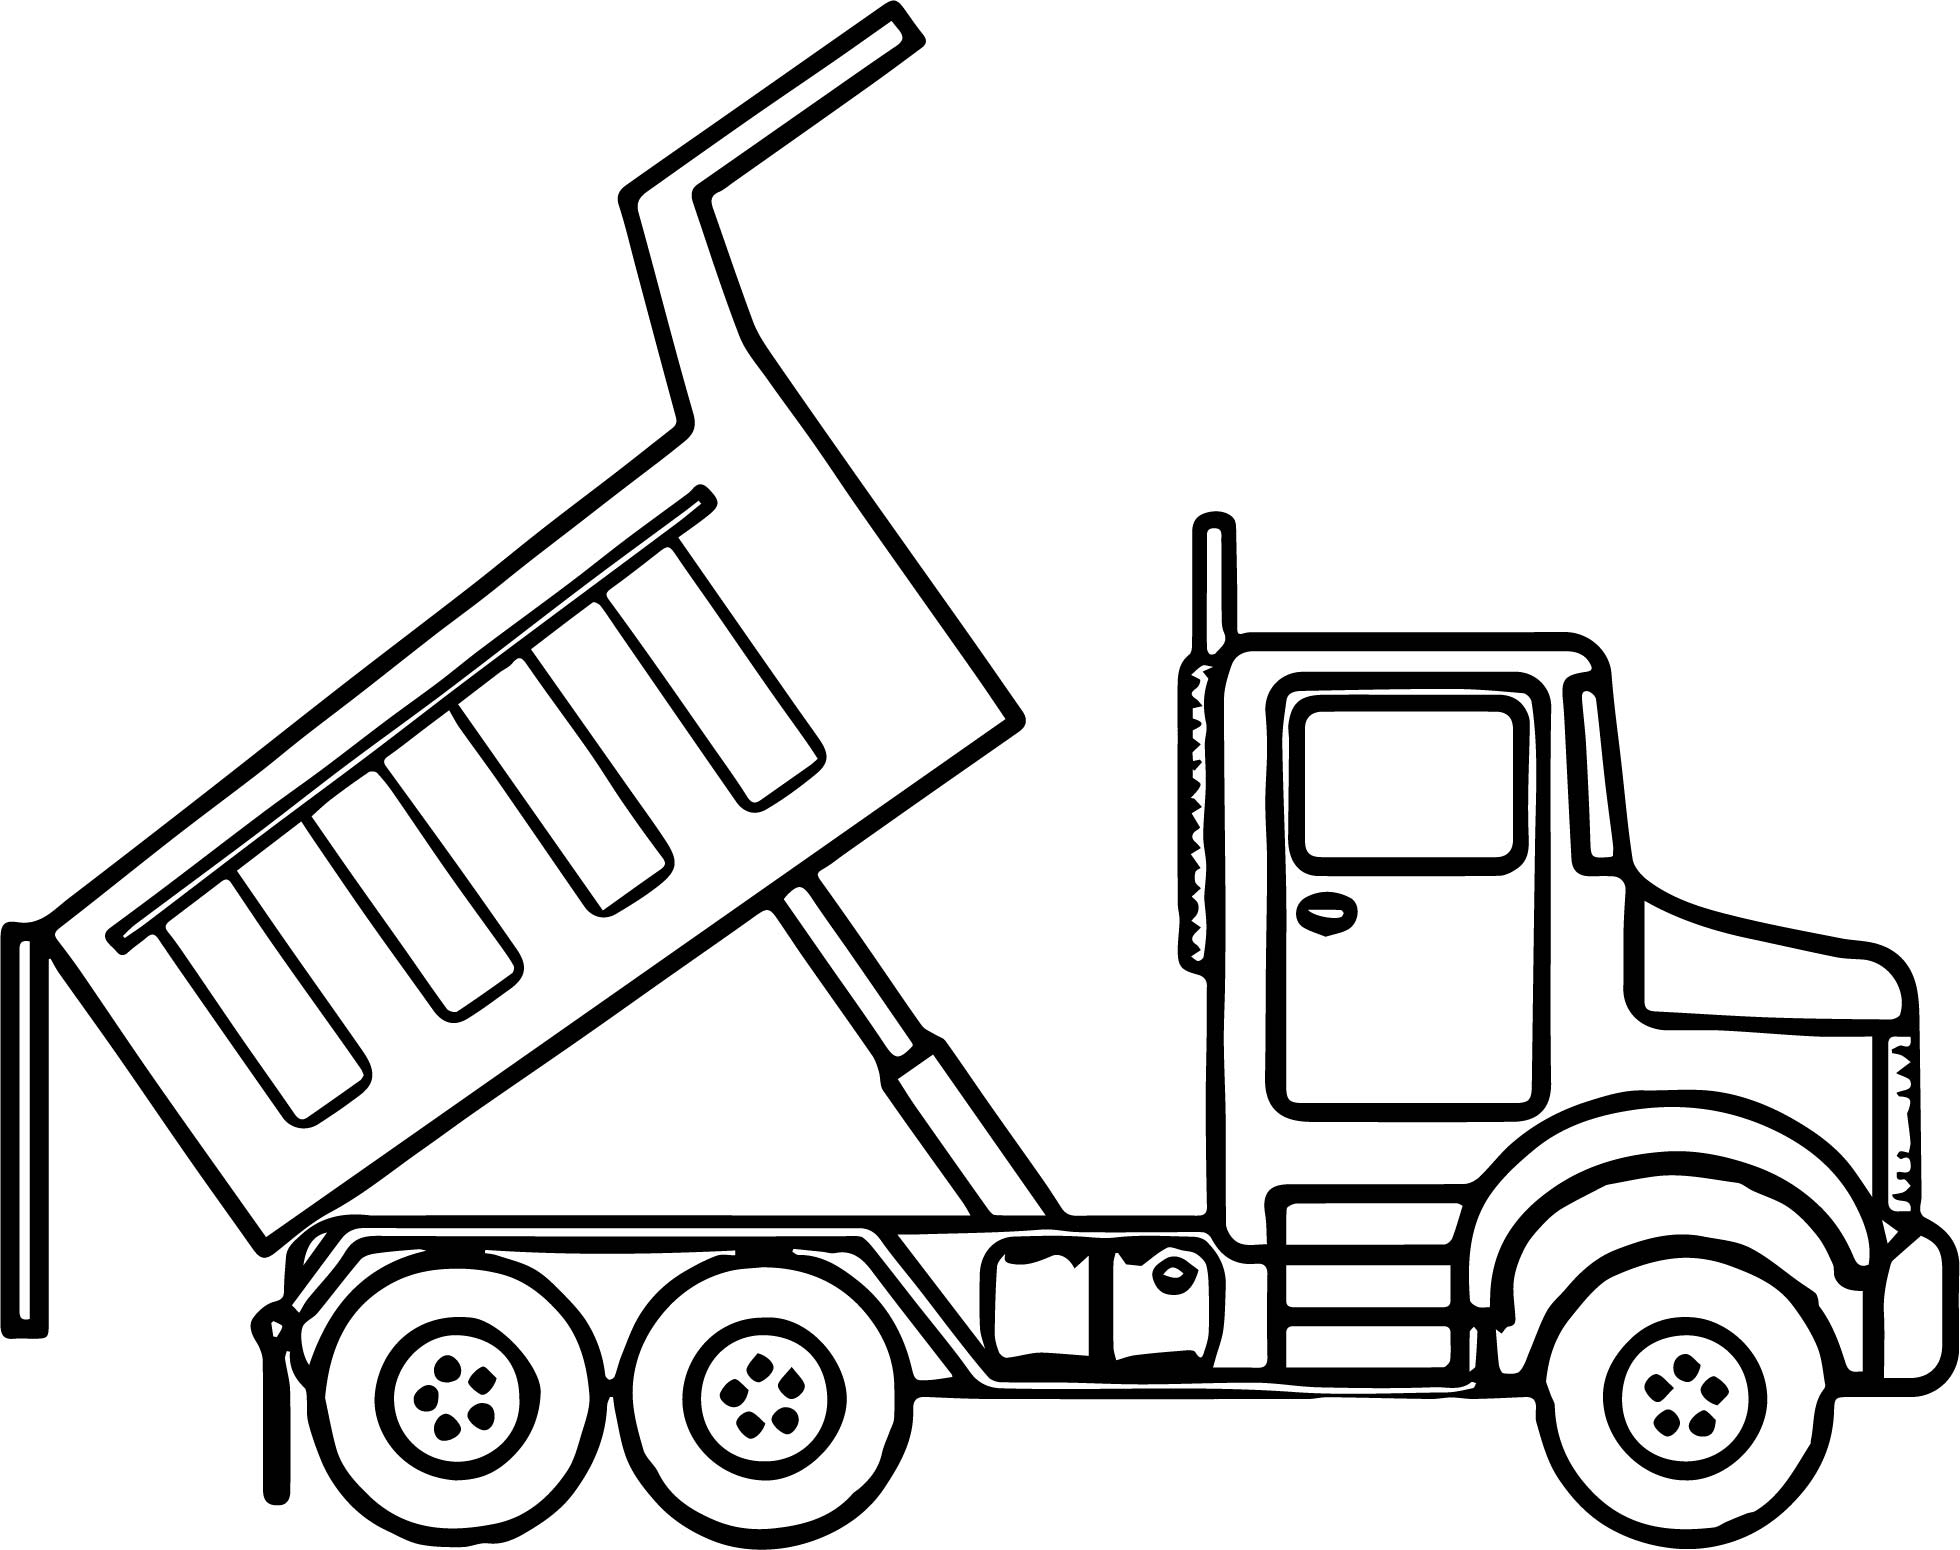 Garbage truck coloring book pages - Scripted Dump Truck Coloring Page Wecoloringpage